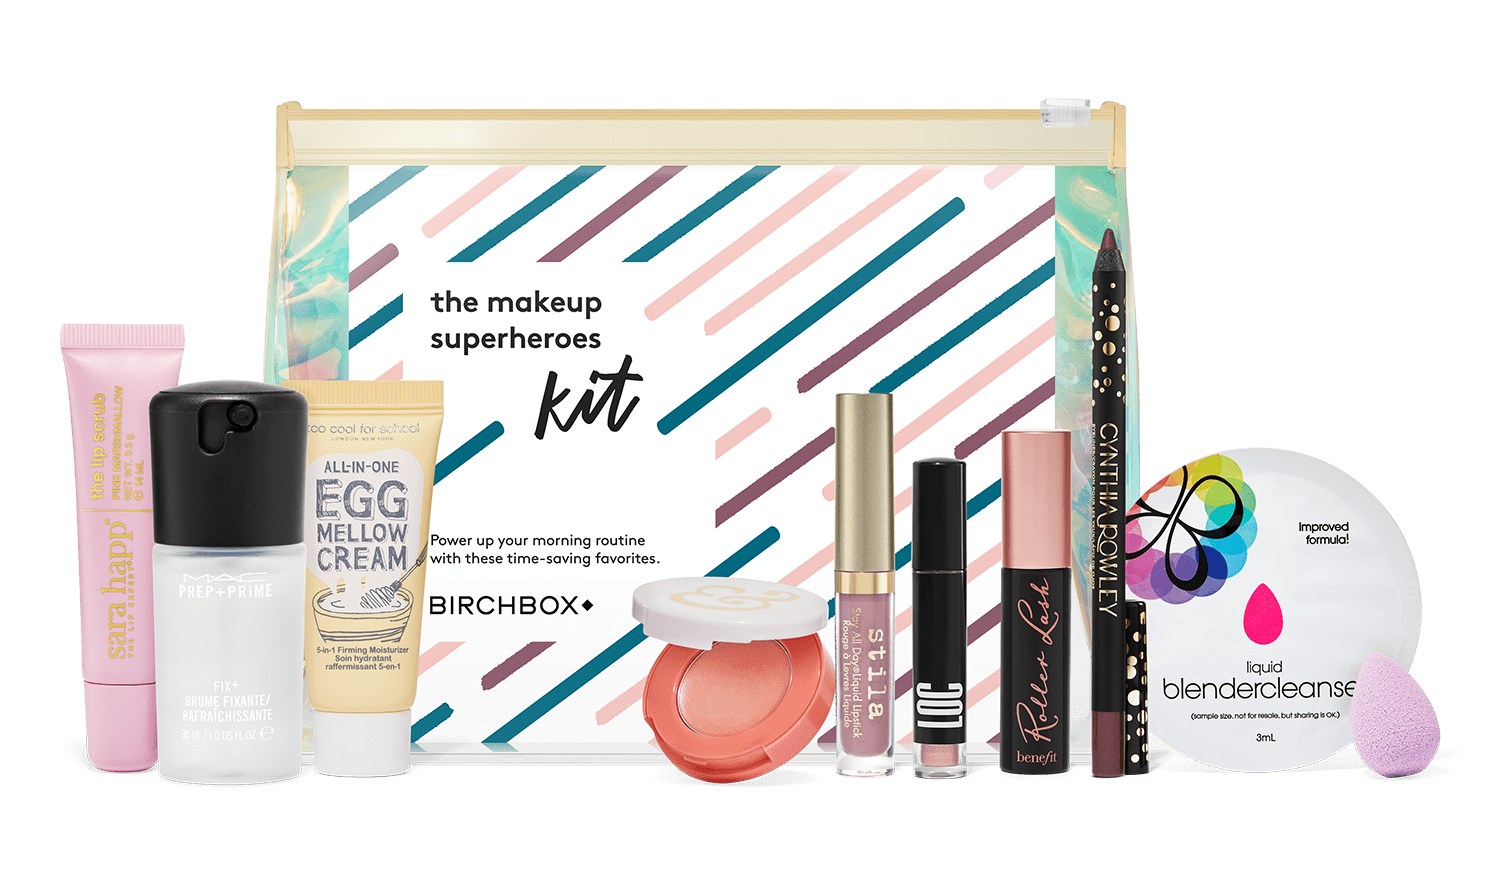 The Makeup Superheroes Kit – New Birchbox Kit Available Now + Free Gift Coupons!